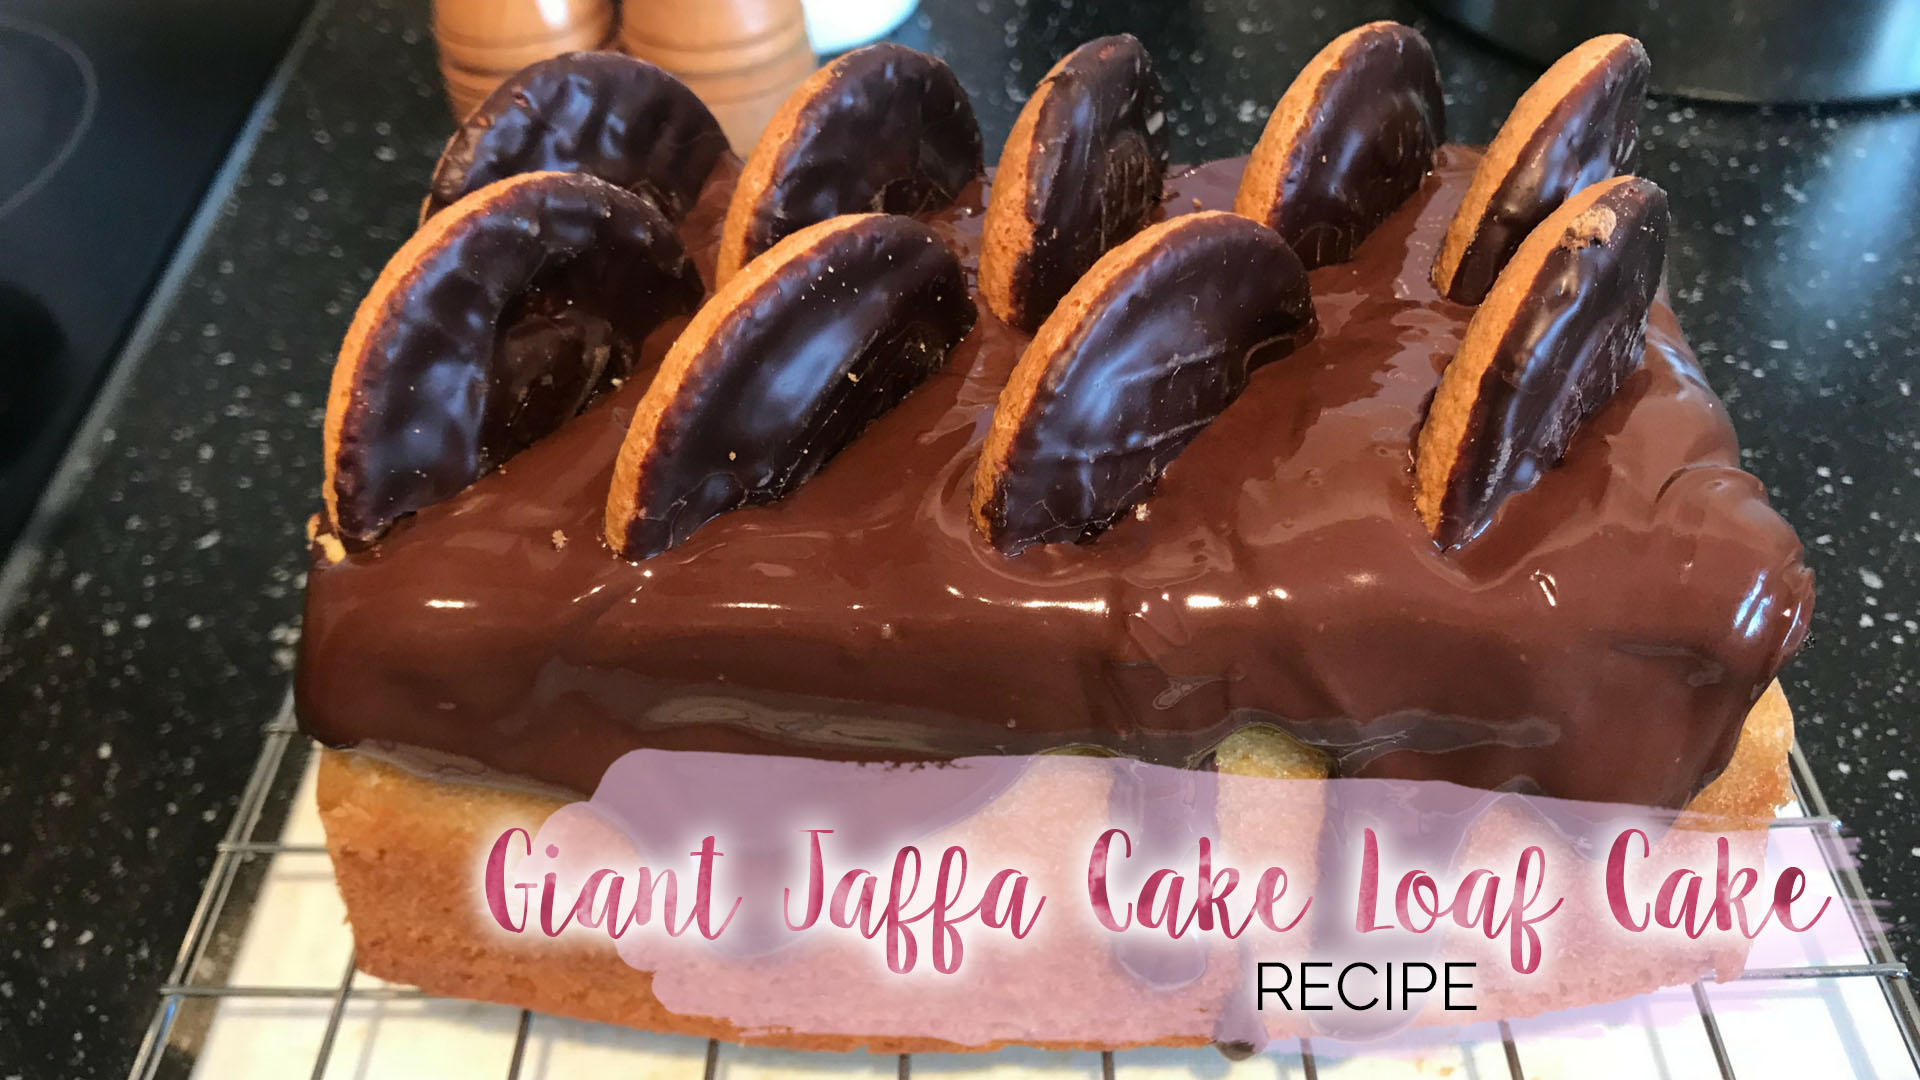 Giant Jaffa Cake Loaf Cake Recipe || Food & Drink